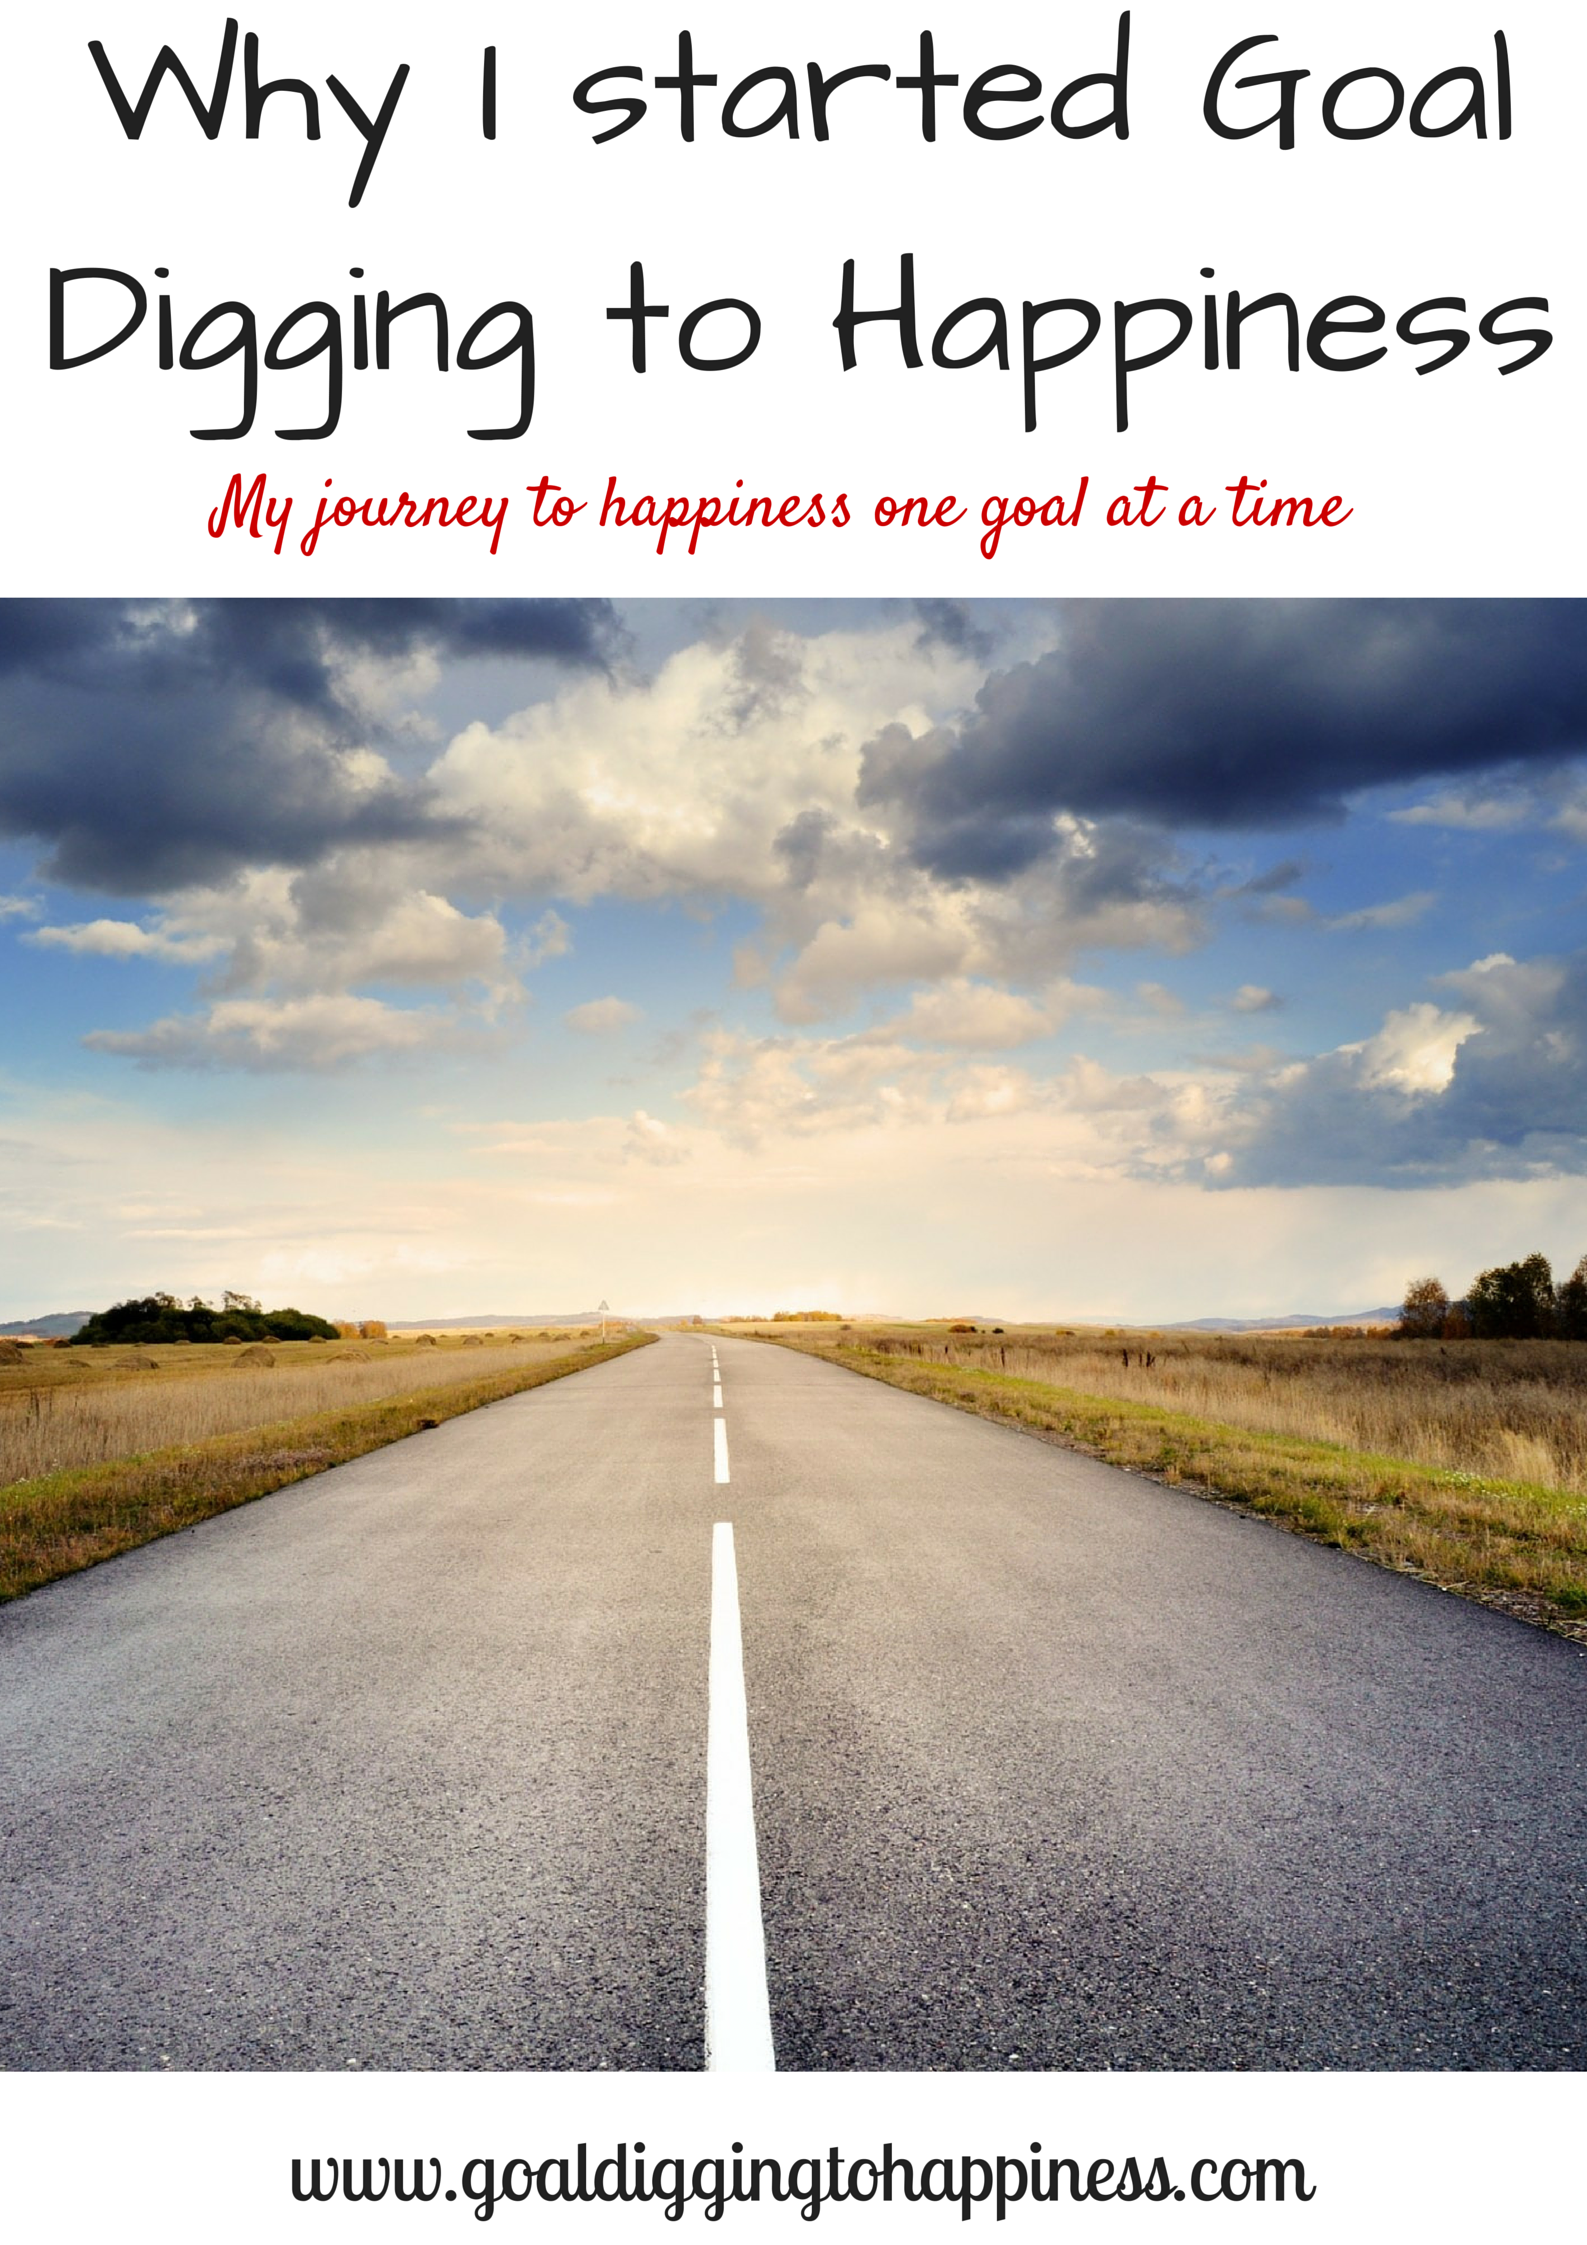 Why I Started Goal Digging To Happiness.